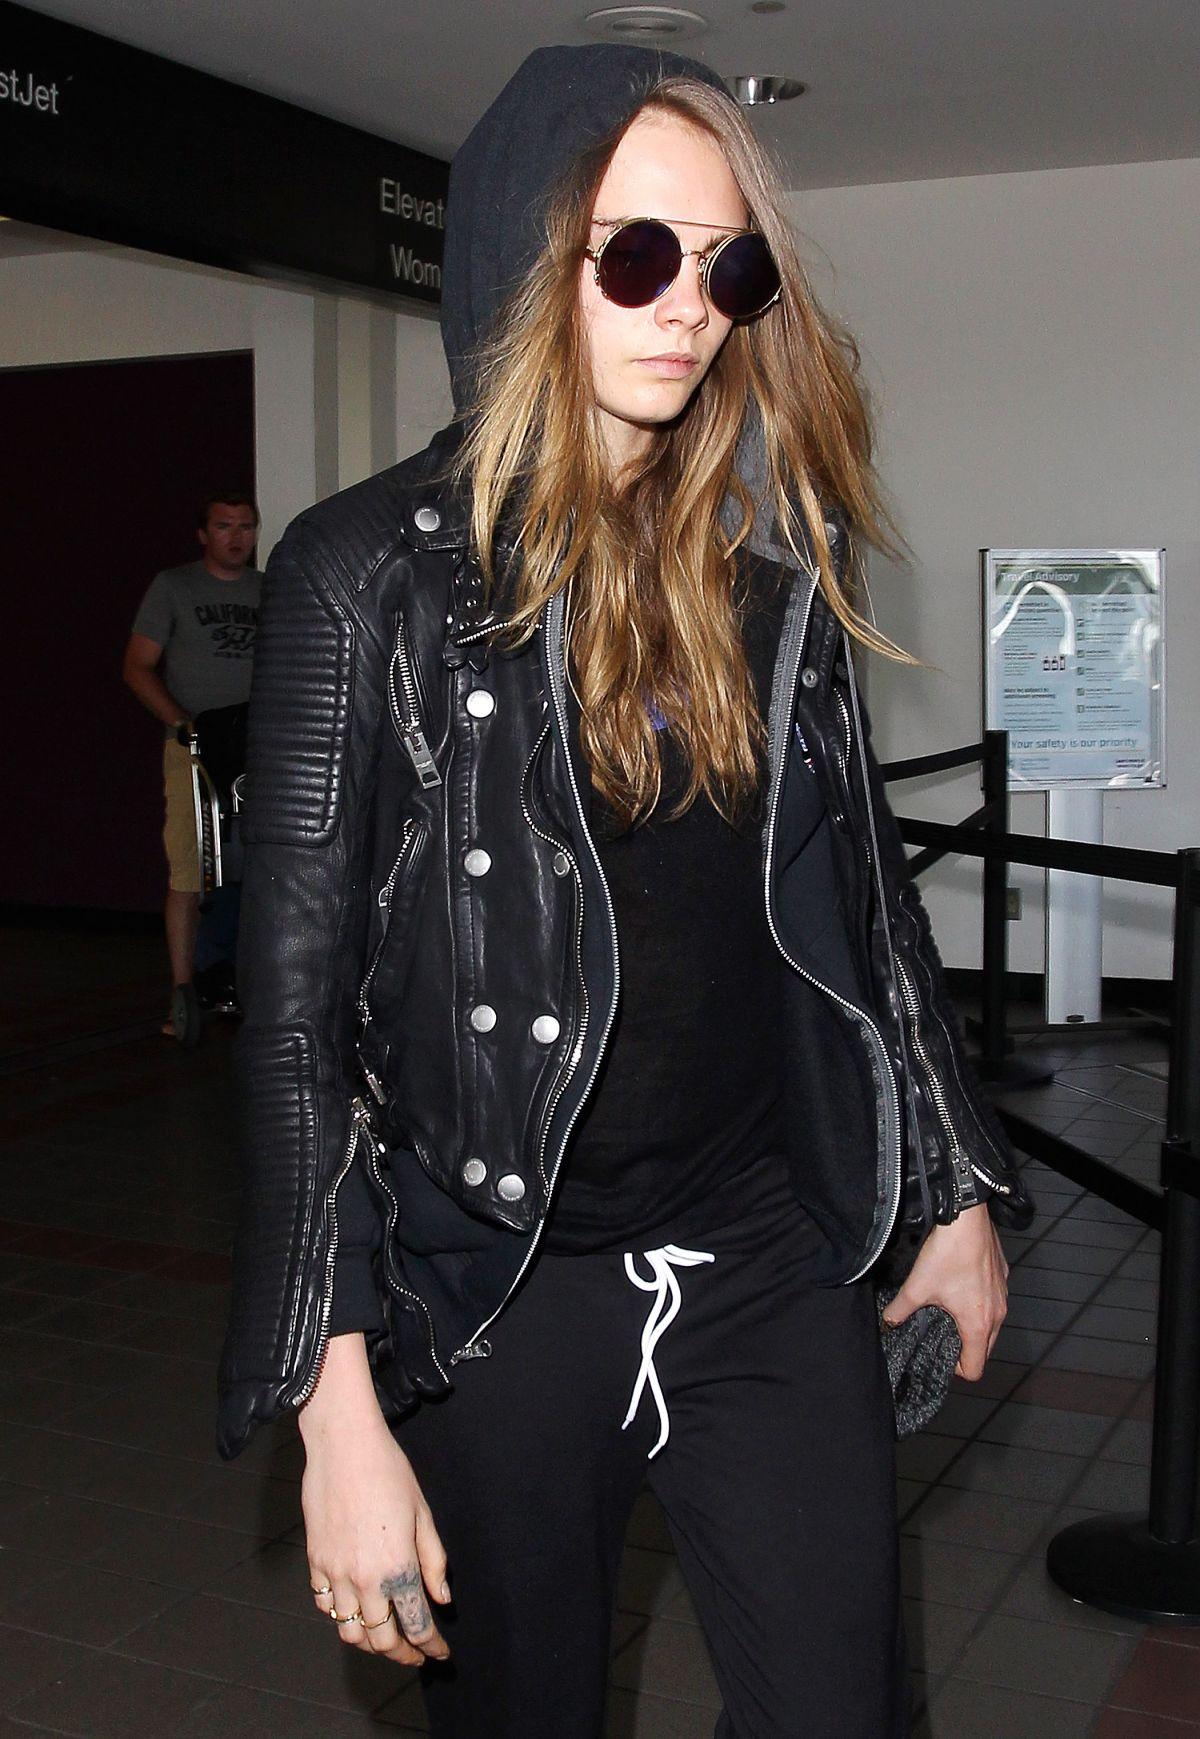 CARA DELEVINGNE Arrives at Los Angeles International Airport 08/28/2015